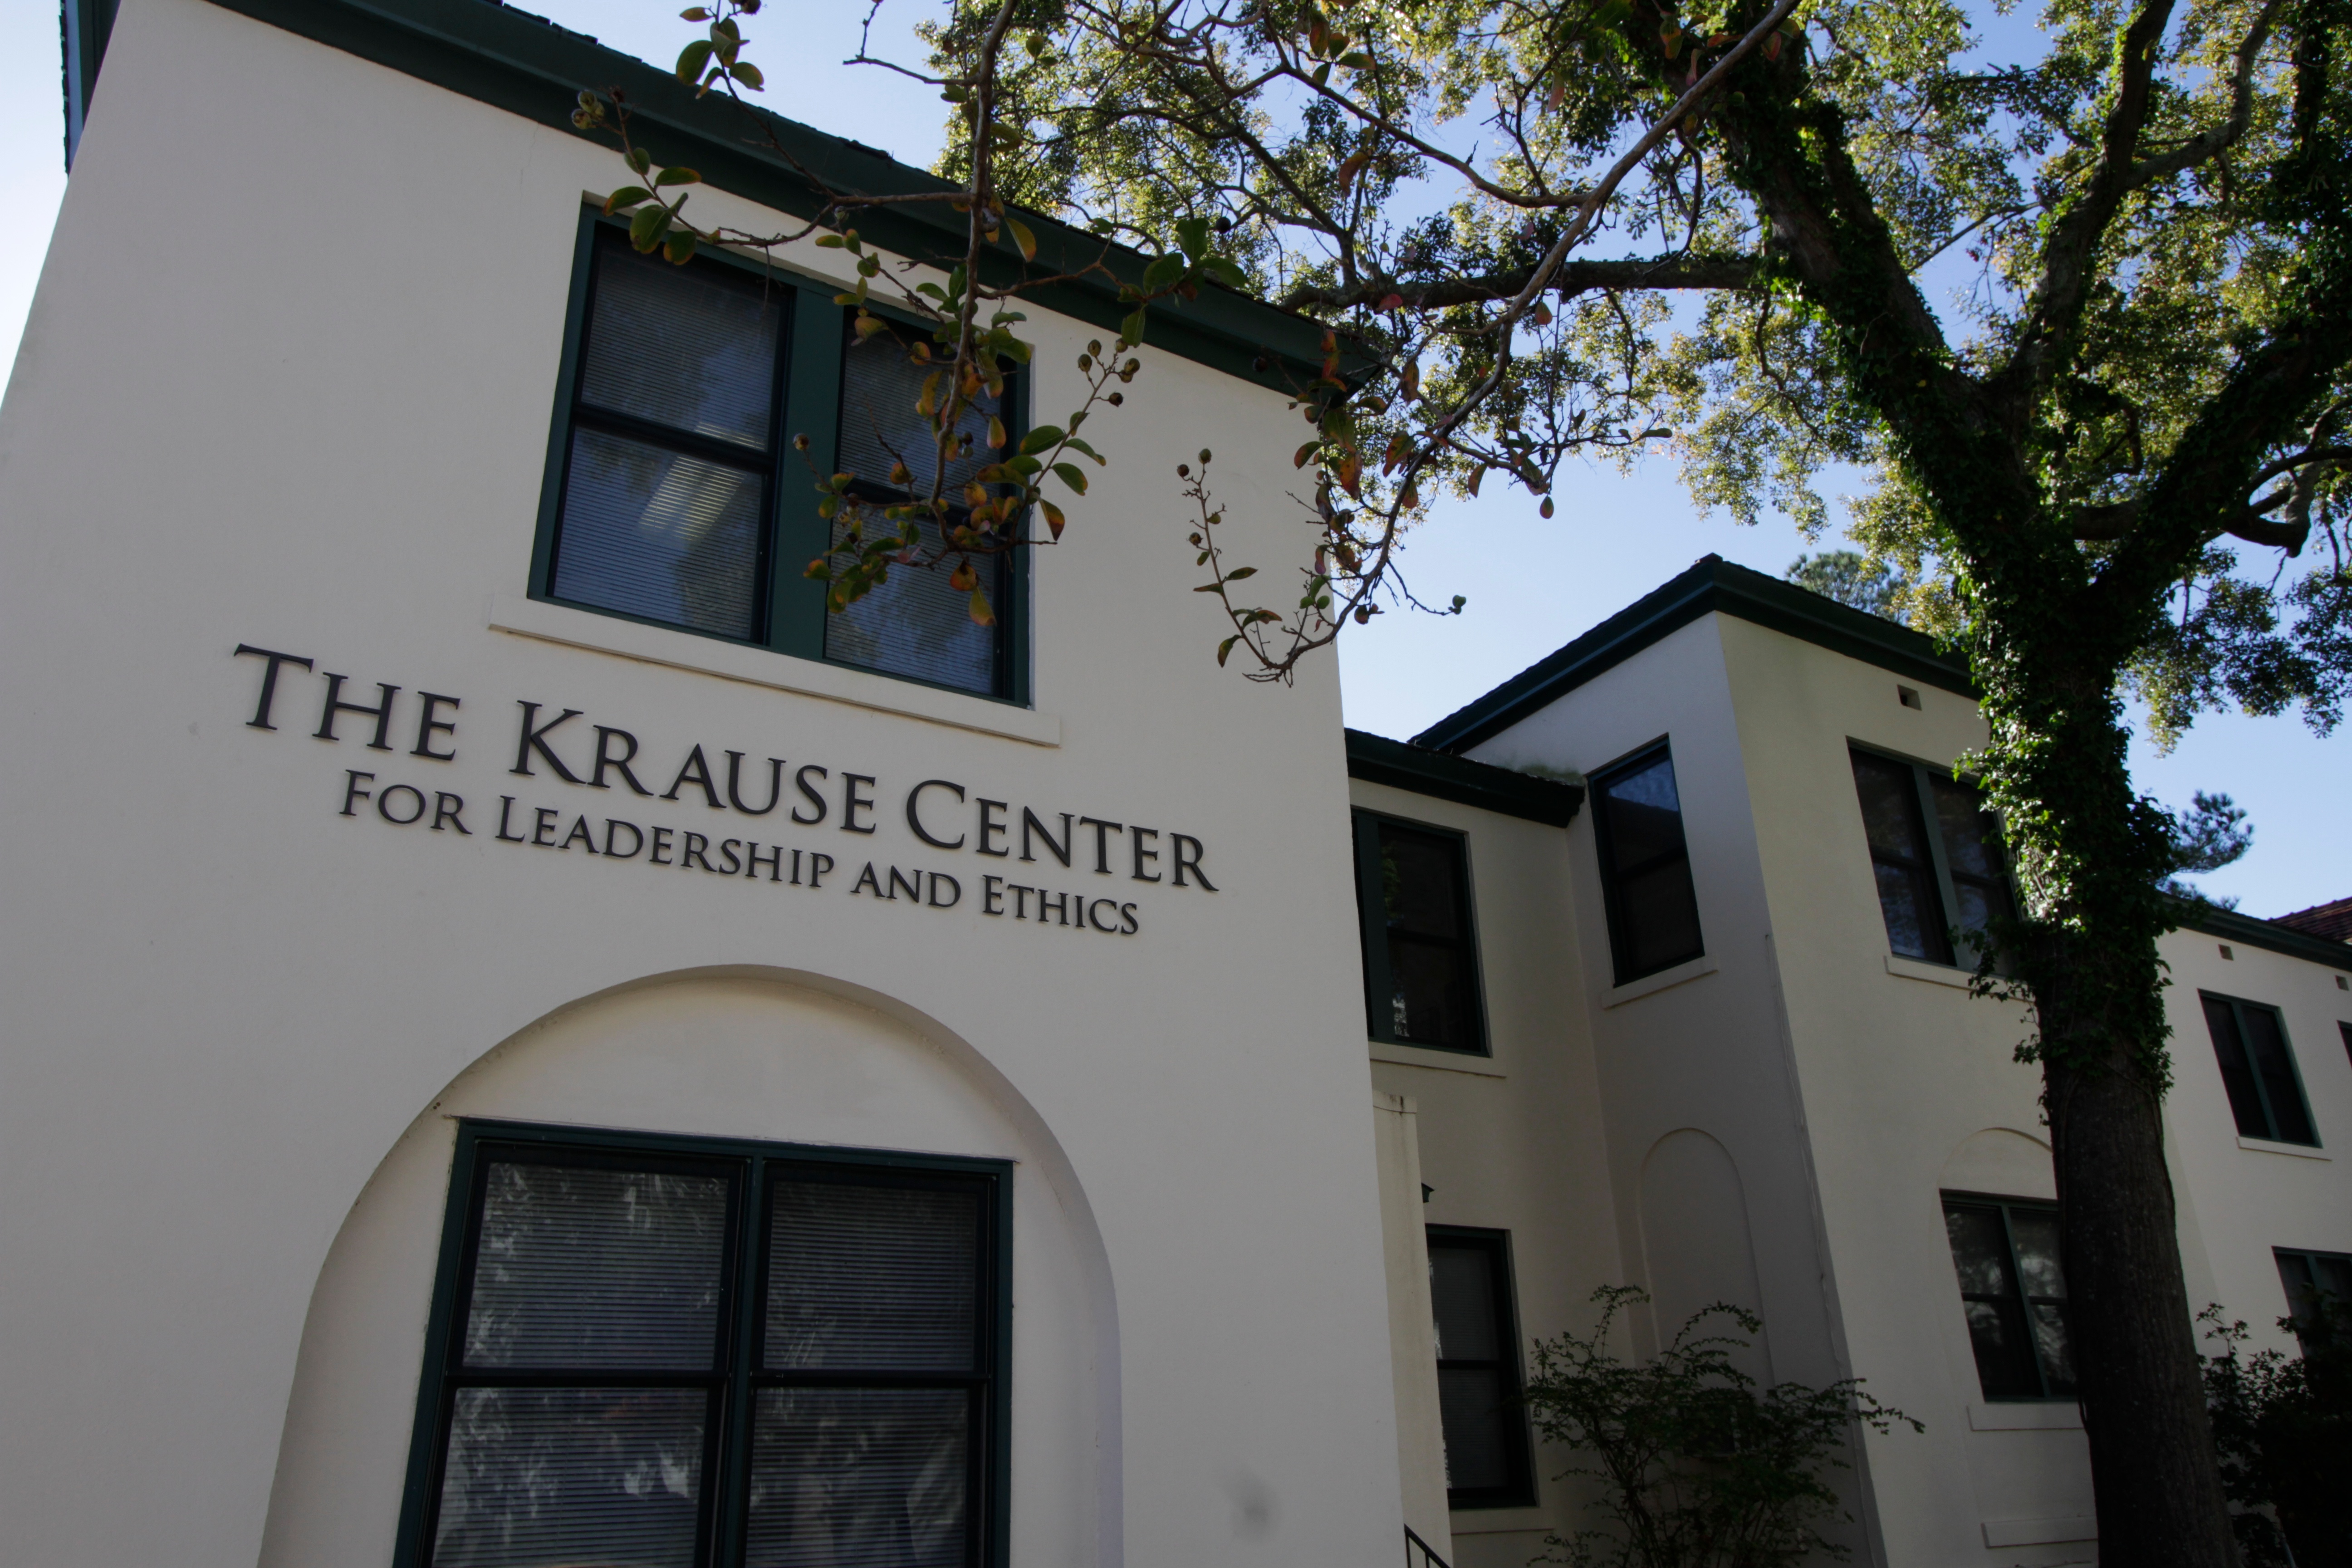 krause center